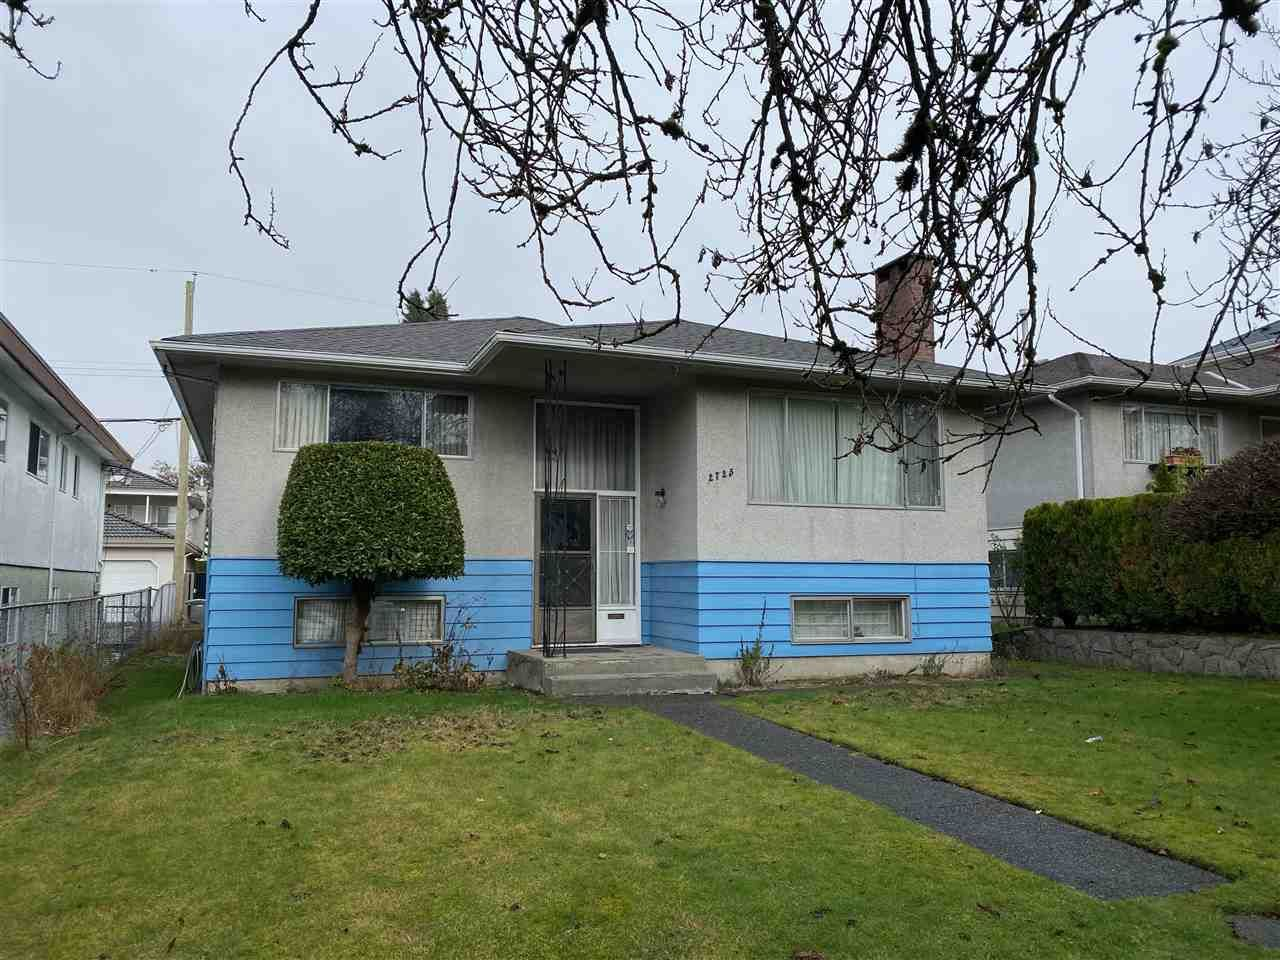 Main Photo: 2725 E 48TH Avenue in Vancouver: Killarney VE House for sale (Vancouver East)  : MLS®# R2533552